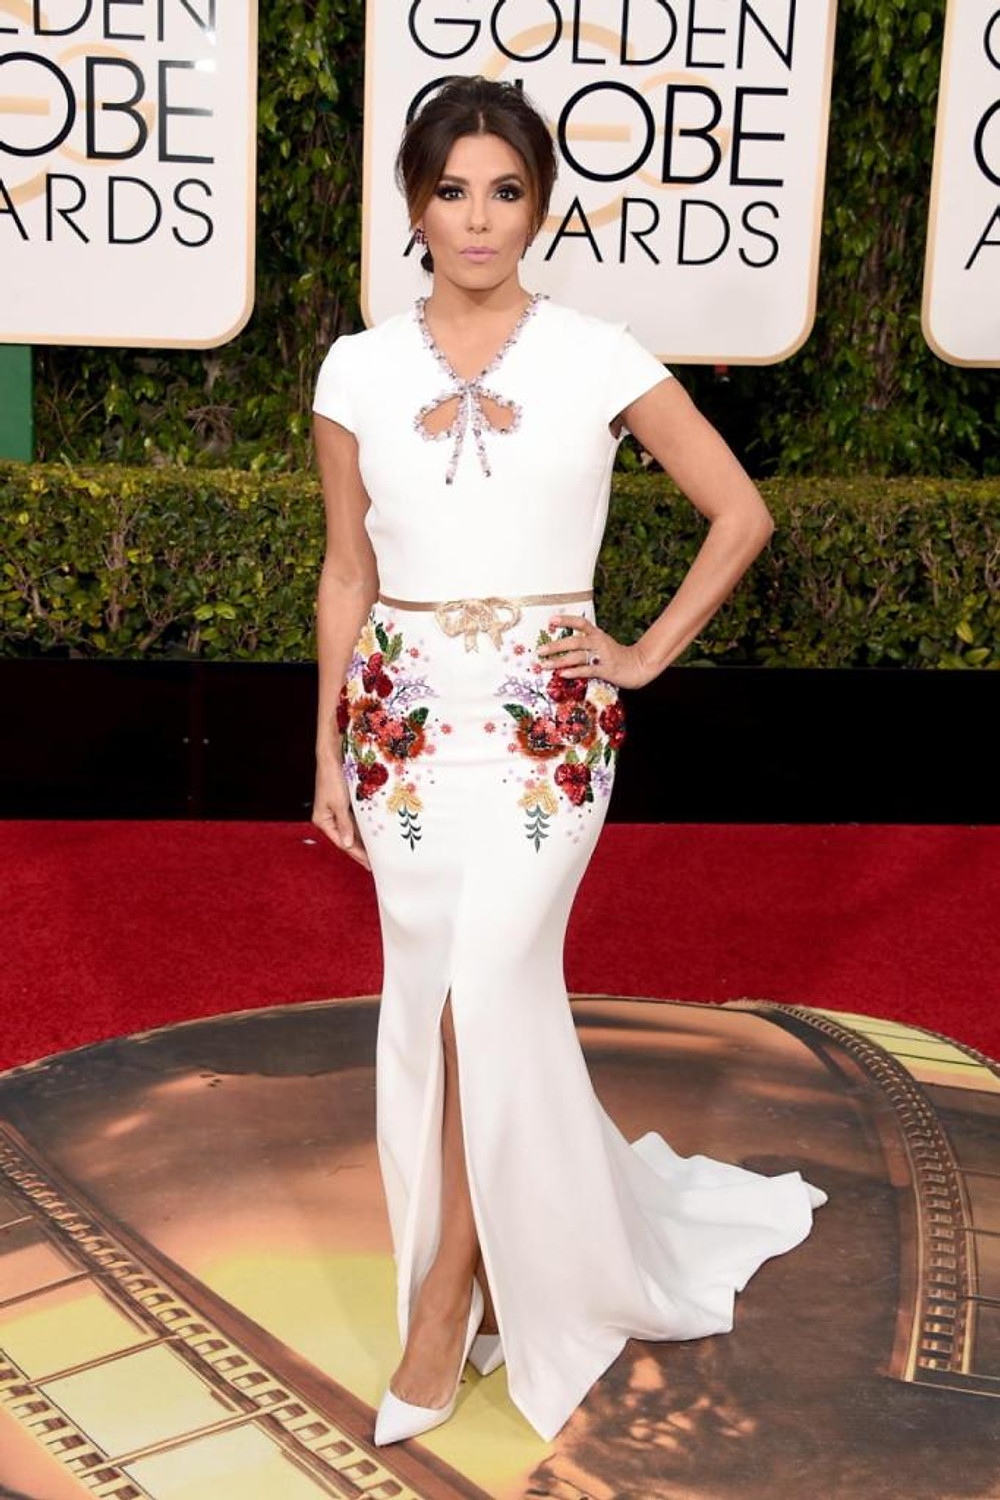 """Telenovela"" star Eva Longoria, who is set to present at the 2016 Golden Globes, looked absolutely stunning white floral embellished gown at the 73rd annual event on Jan. 10, 2016."